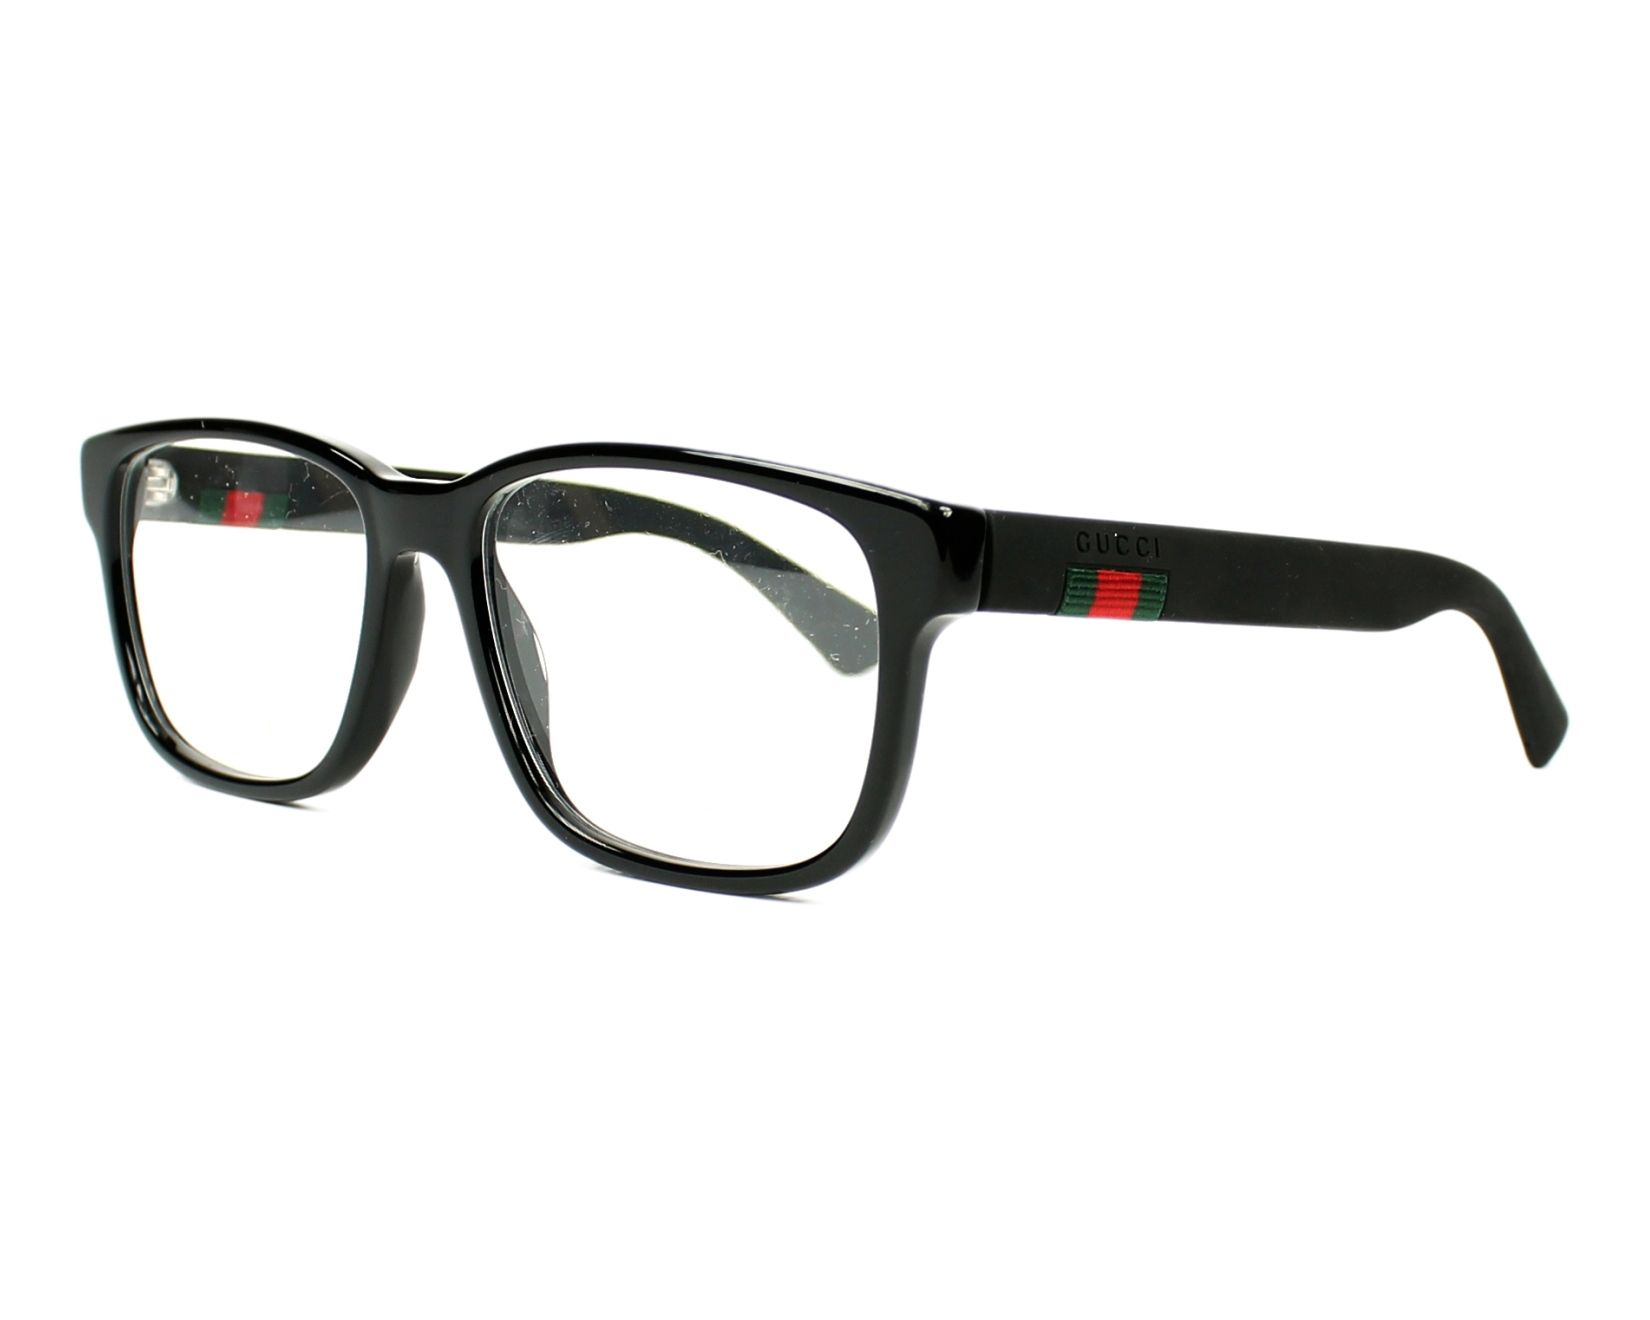 Buy Gucci eyeglasses online at low prices (+ than 350 Gucci eyeglasses)